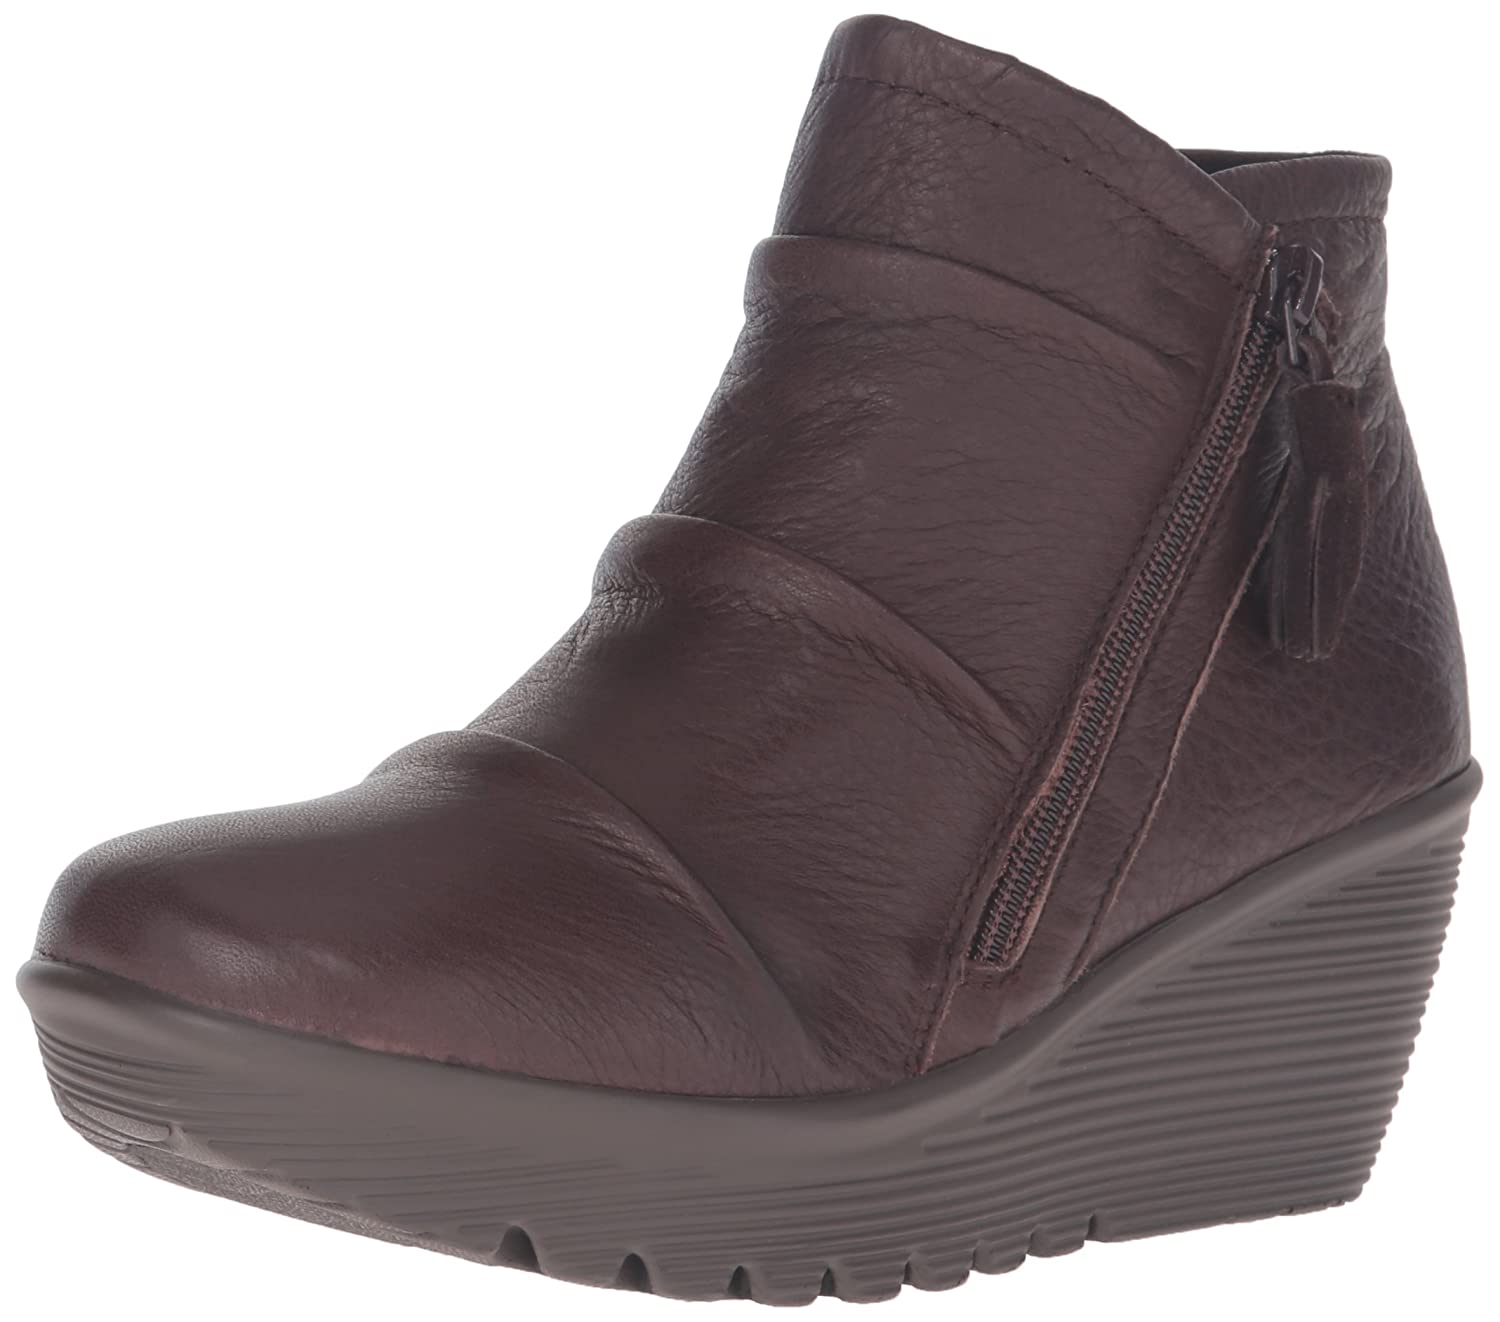 Skechers Women's Parallel-Double Trouble Ankle Bootie B01C5OE6W6 6.5 B(M) US|Chocolate